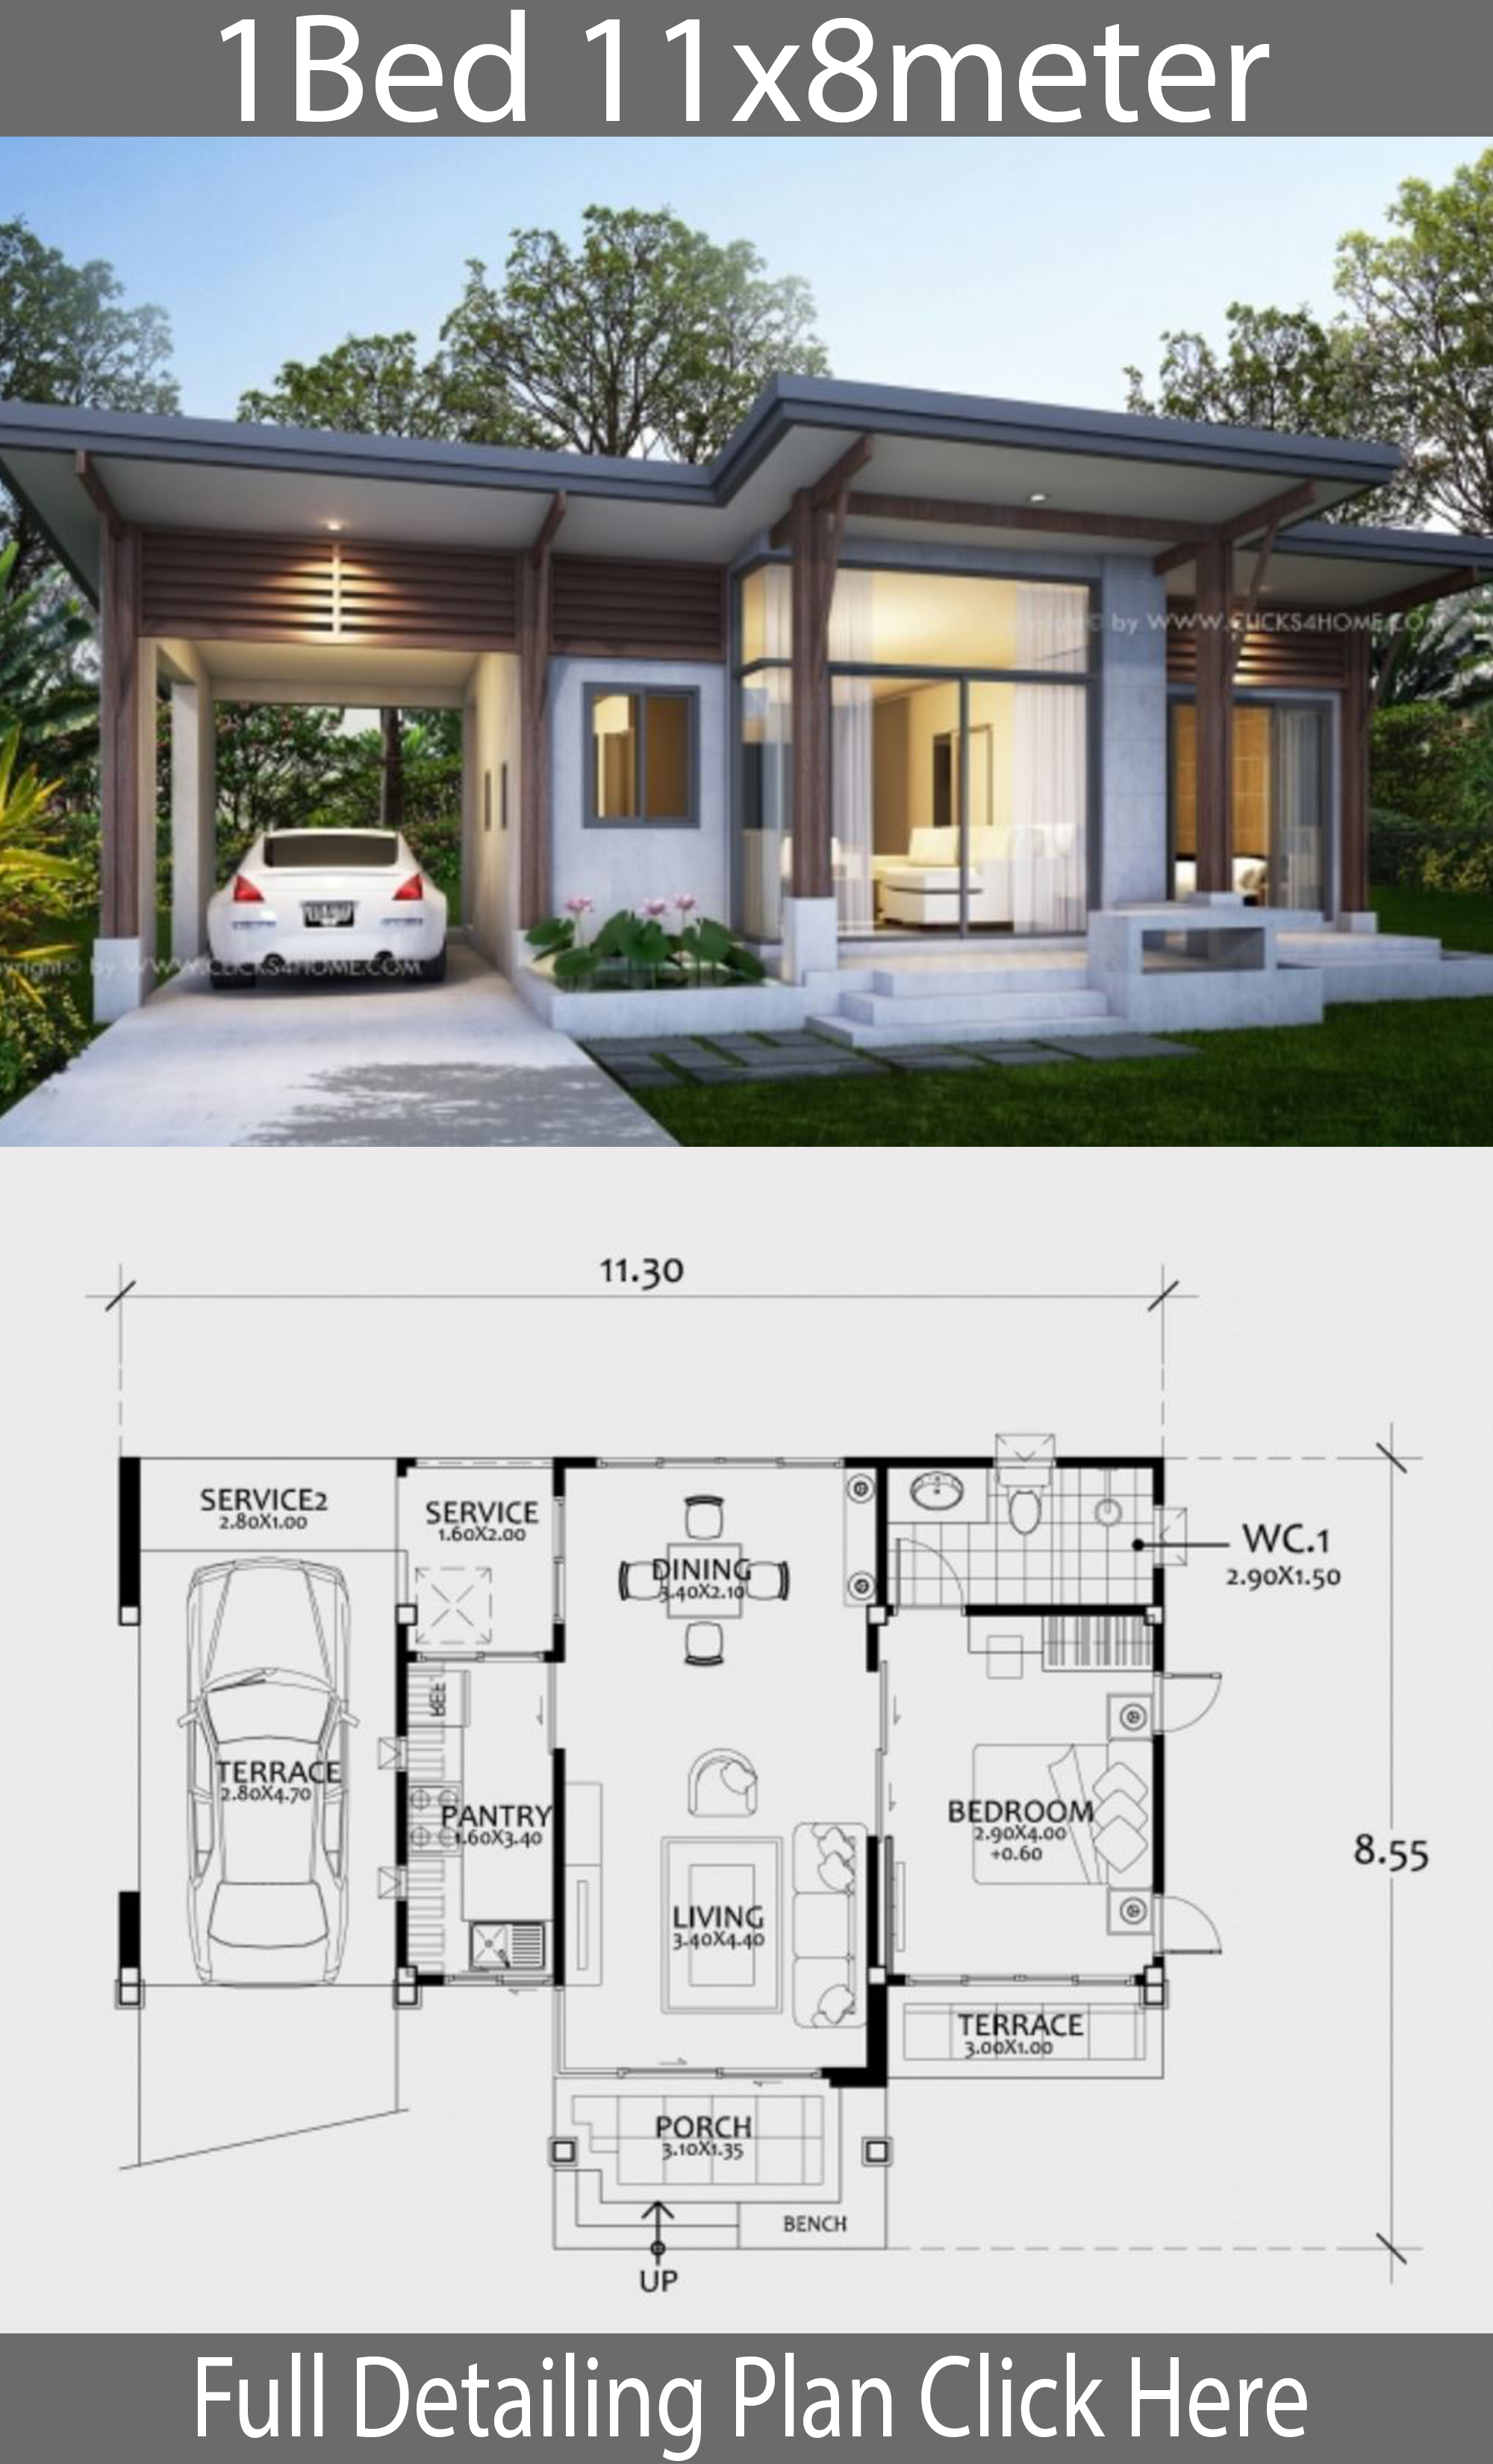 Home design plan 11x8m with One Bedroom - House Plans 3D